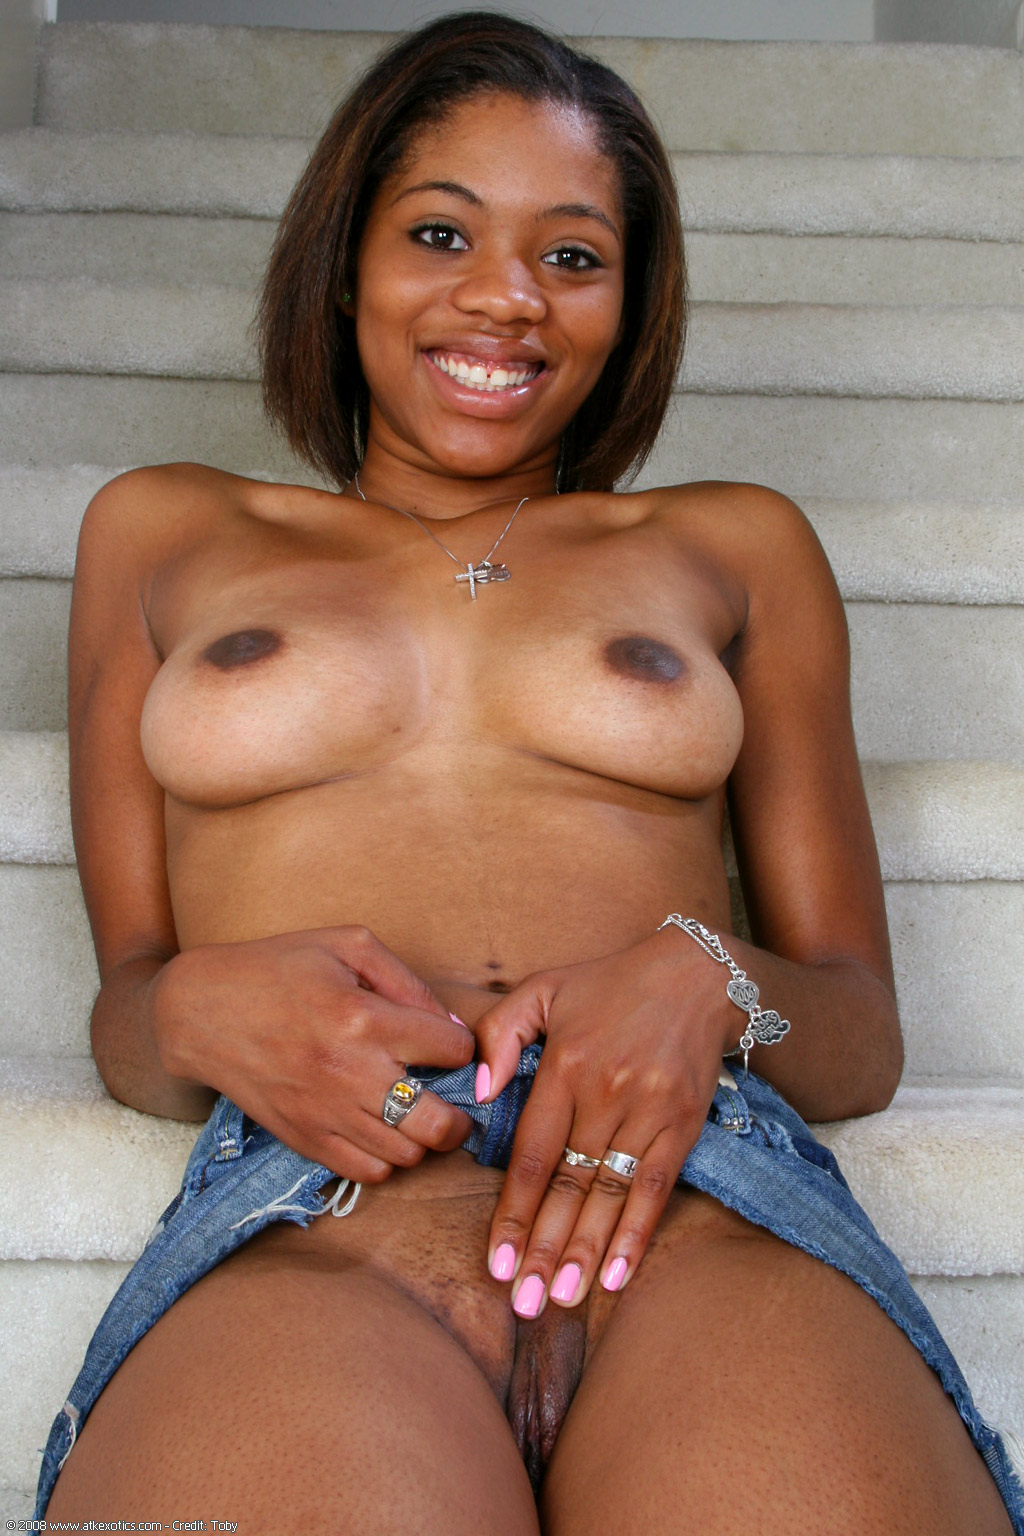 Naked black women to download for free sexy scenes